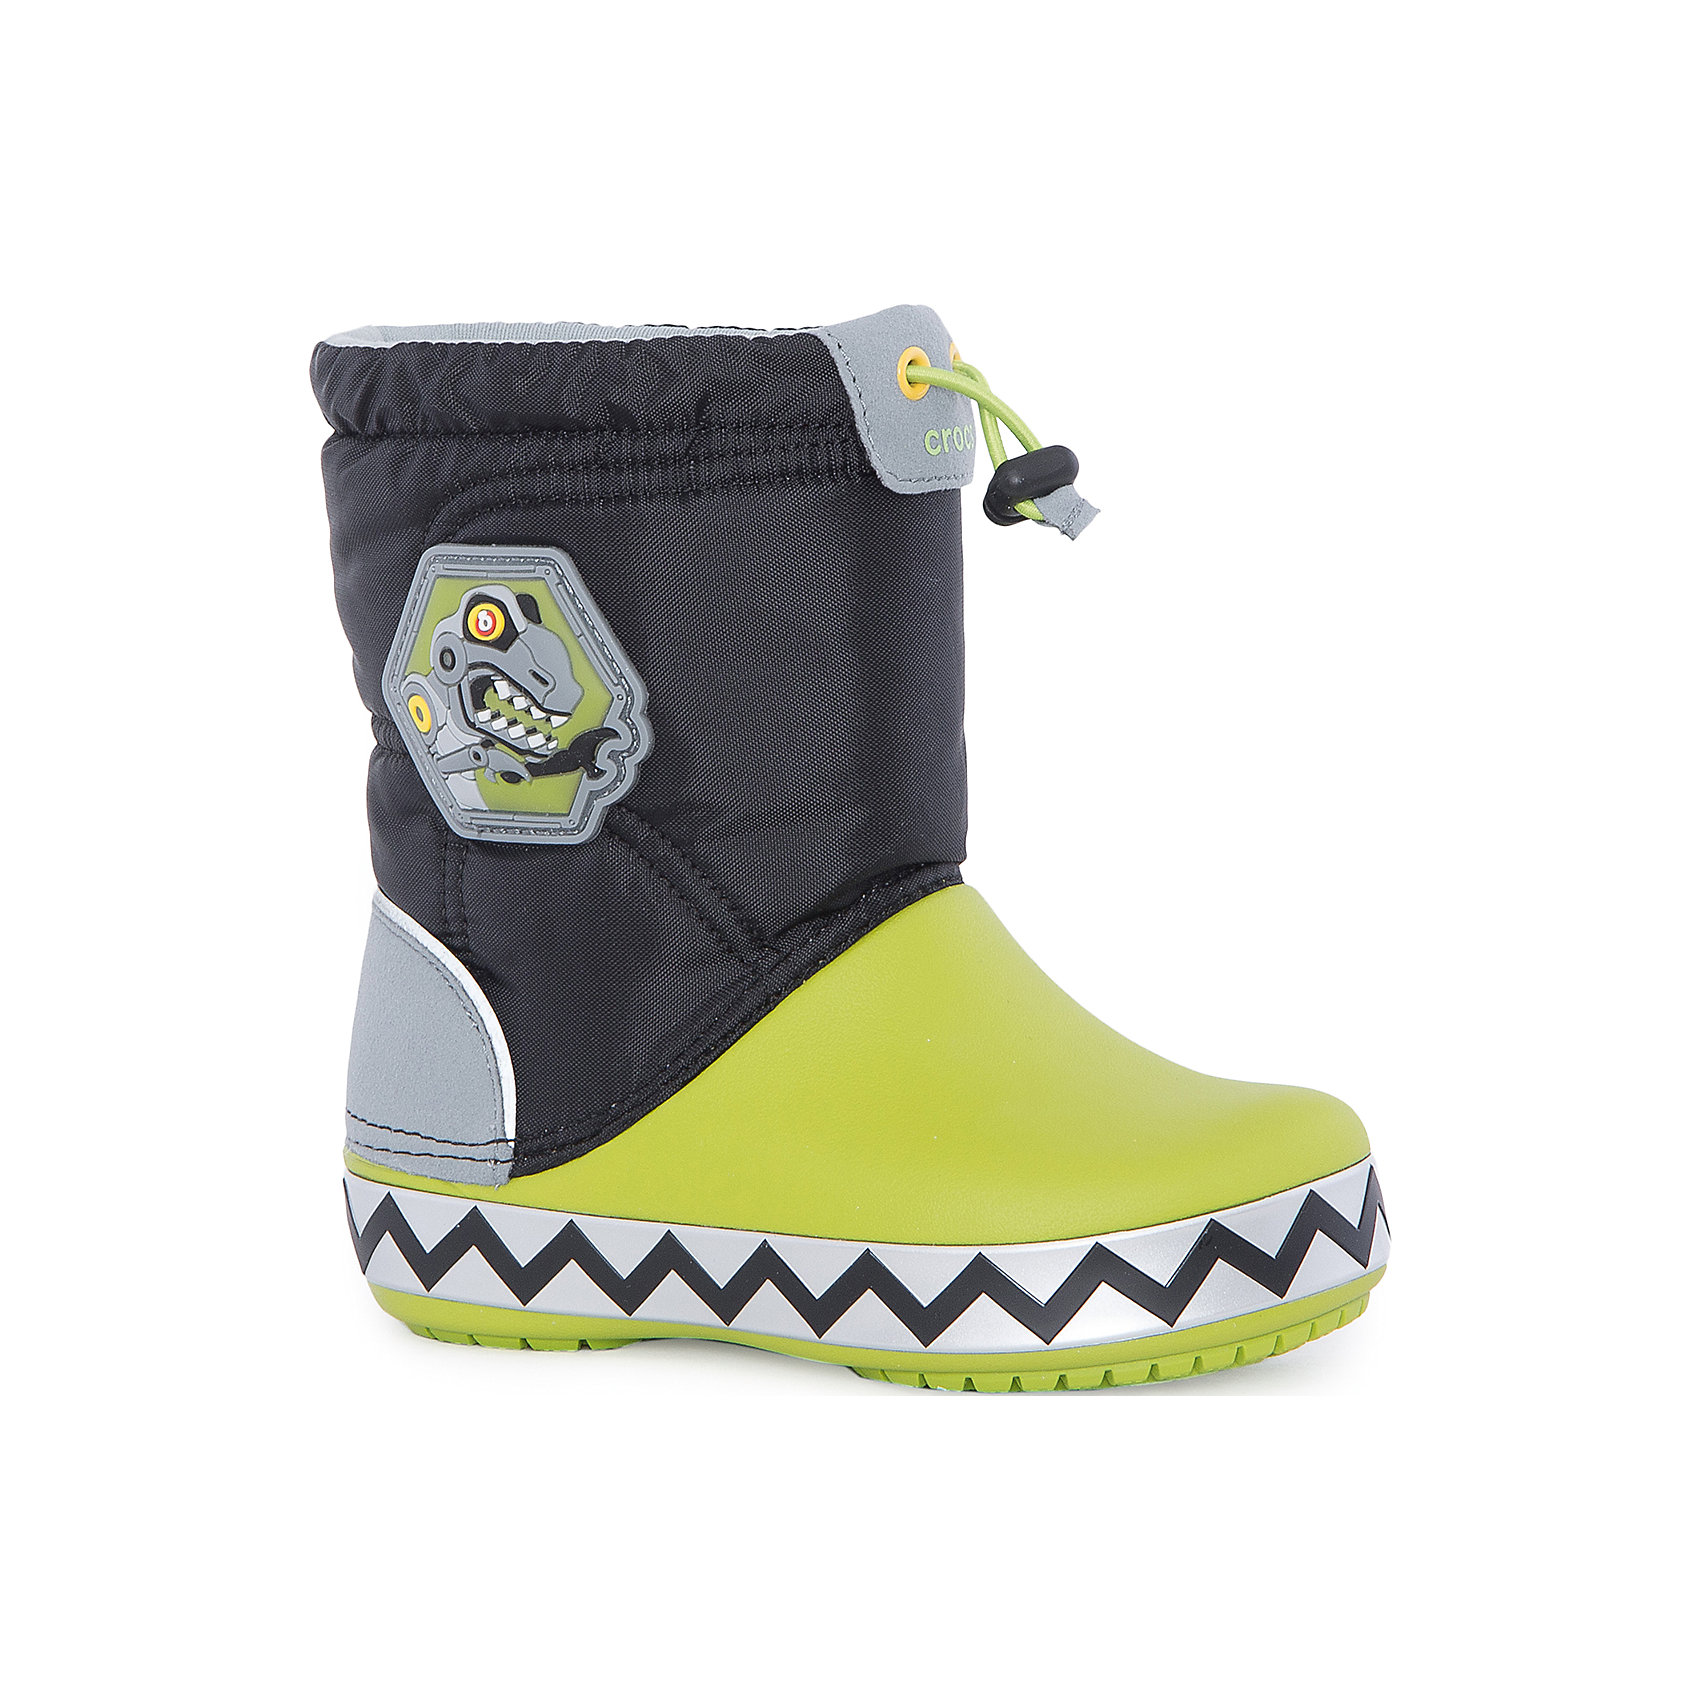 Сапоги Kids' CrocsLights LodgePoint RoboSaur Boot для мальчика CROCS